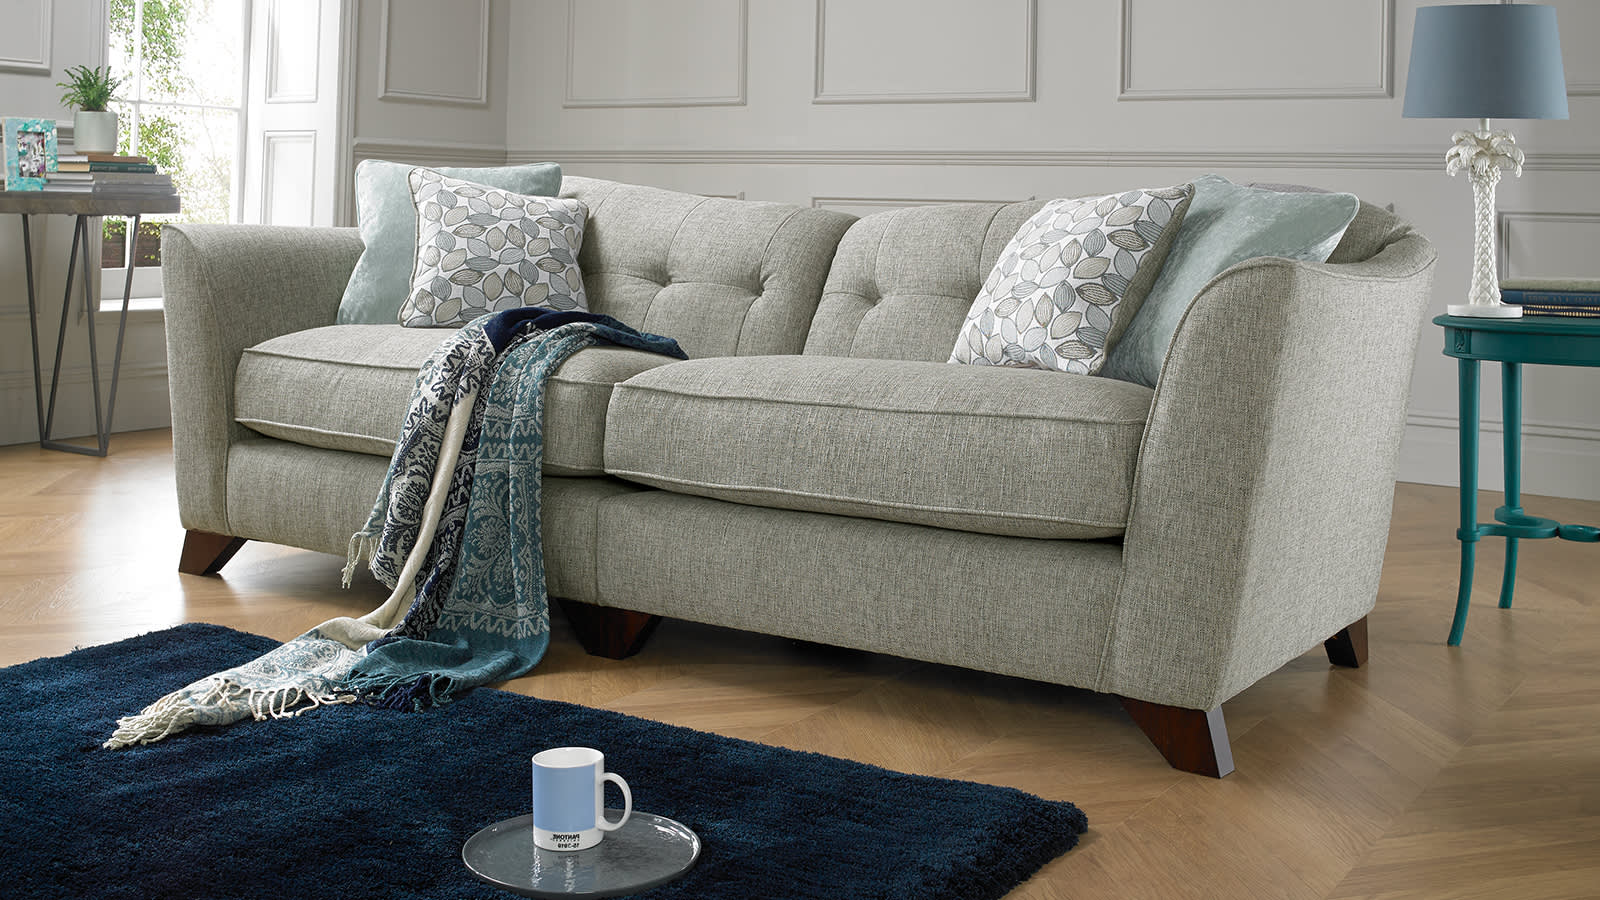 Sofas For Express Delivery In As Little As 14 Days Sofology